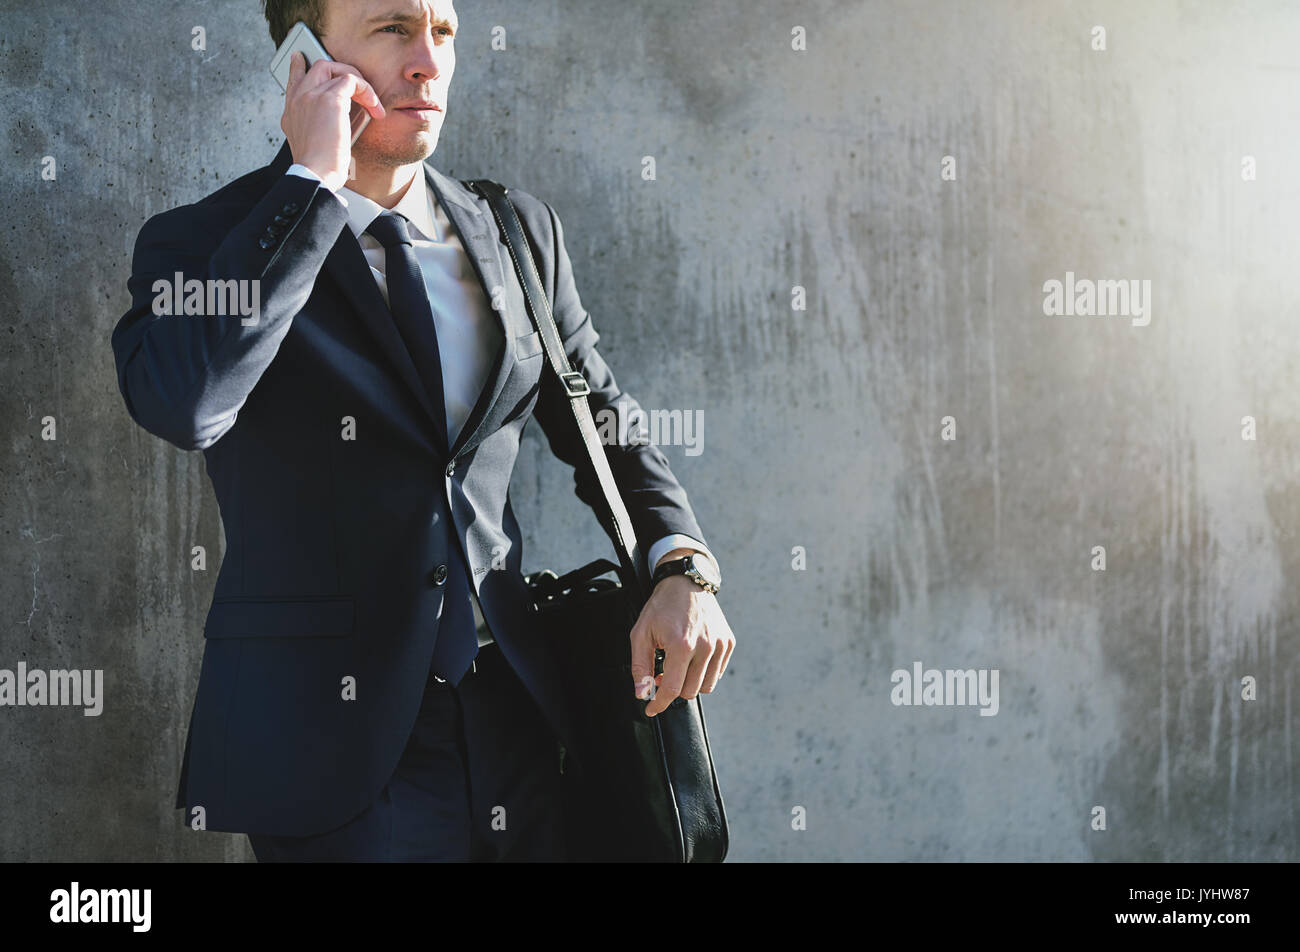 A confident businessman wearing the stylish formal suit and having a phone conversation. - Stock Image